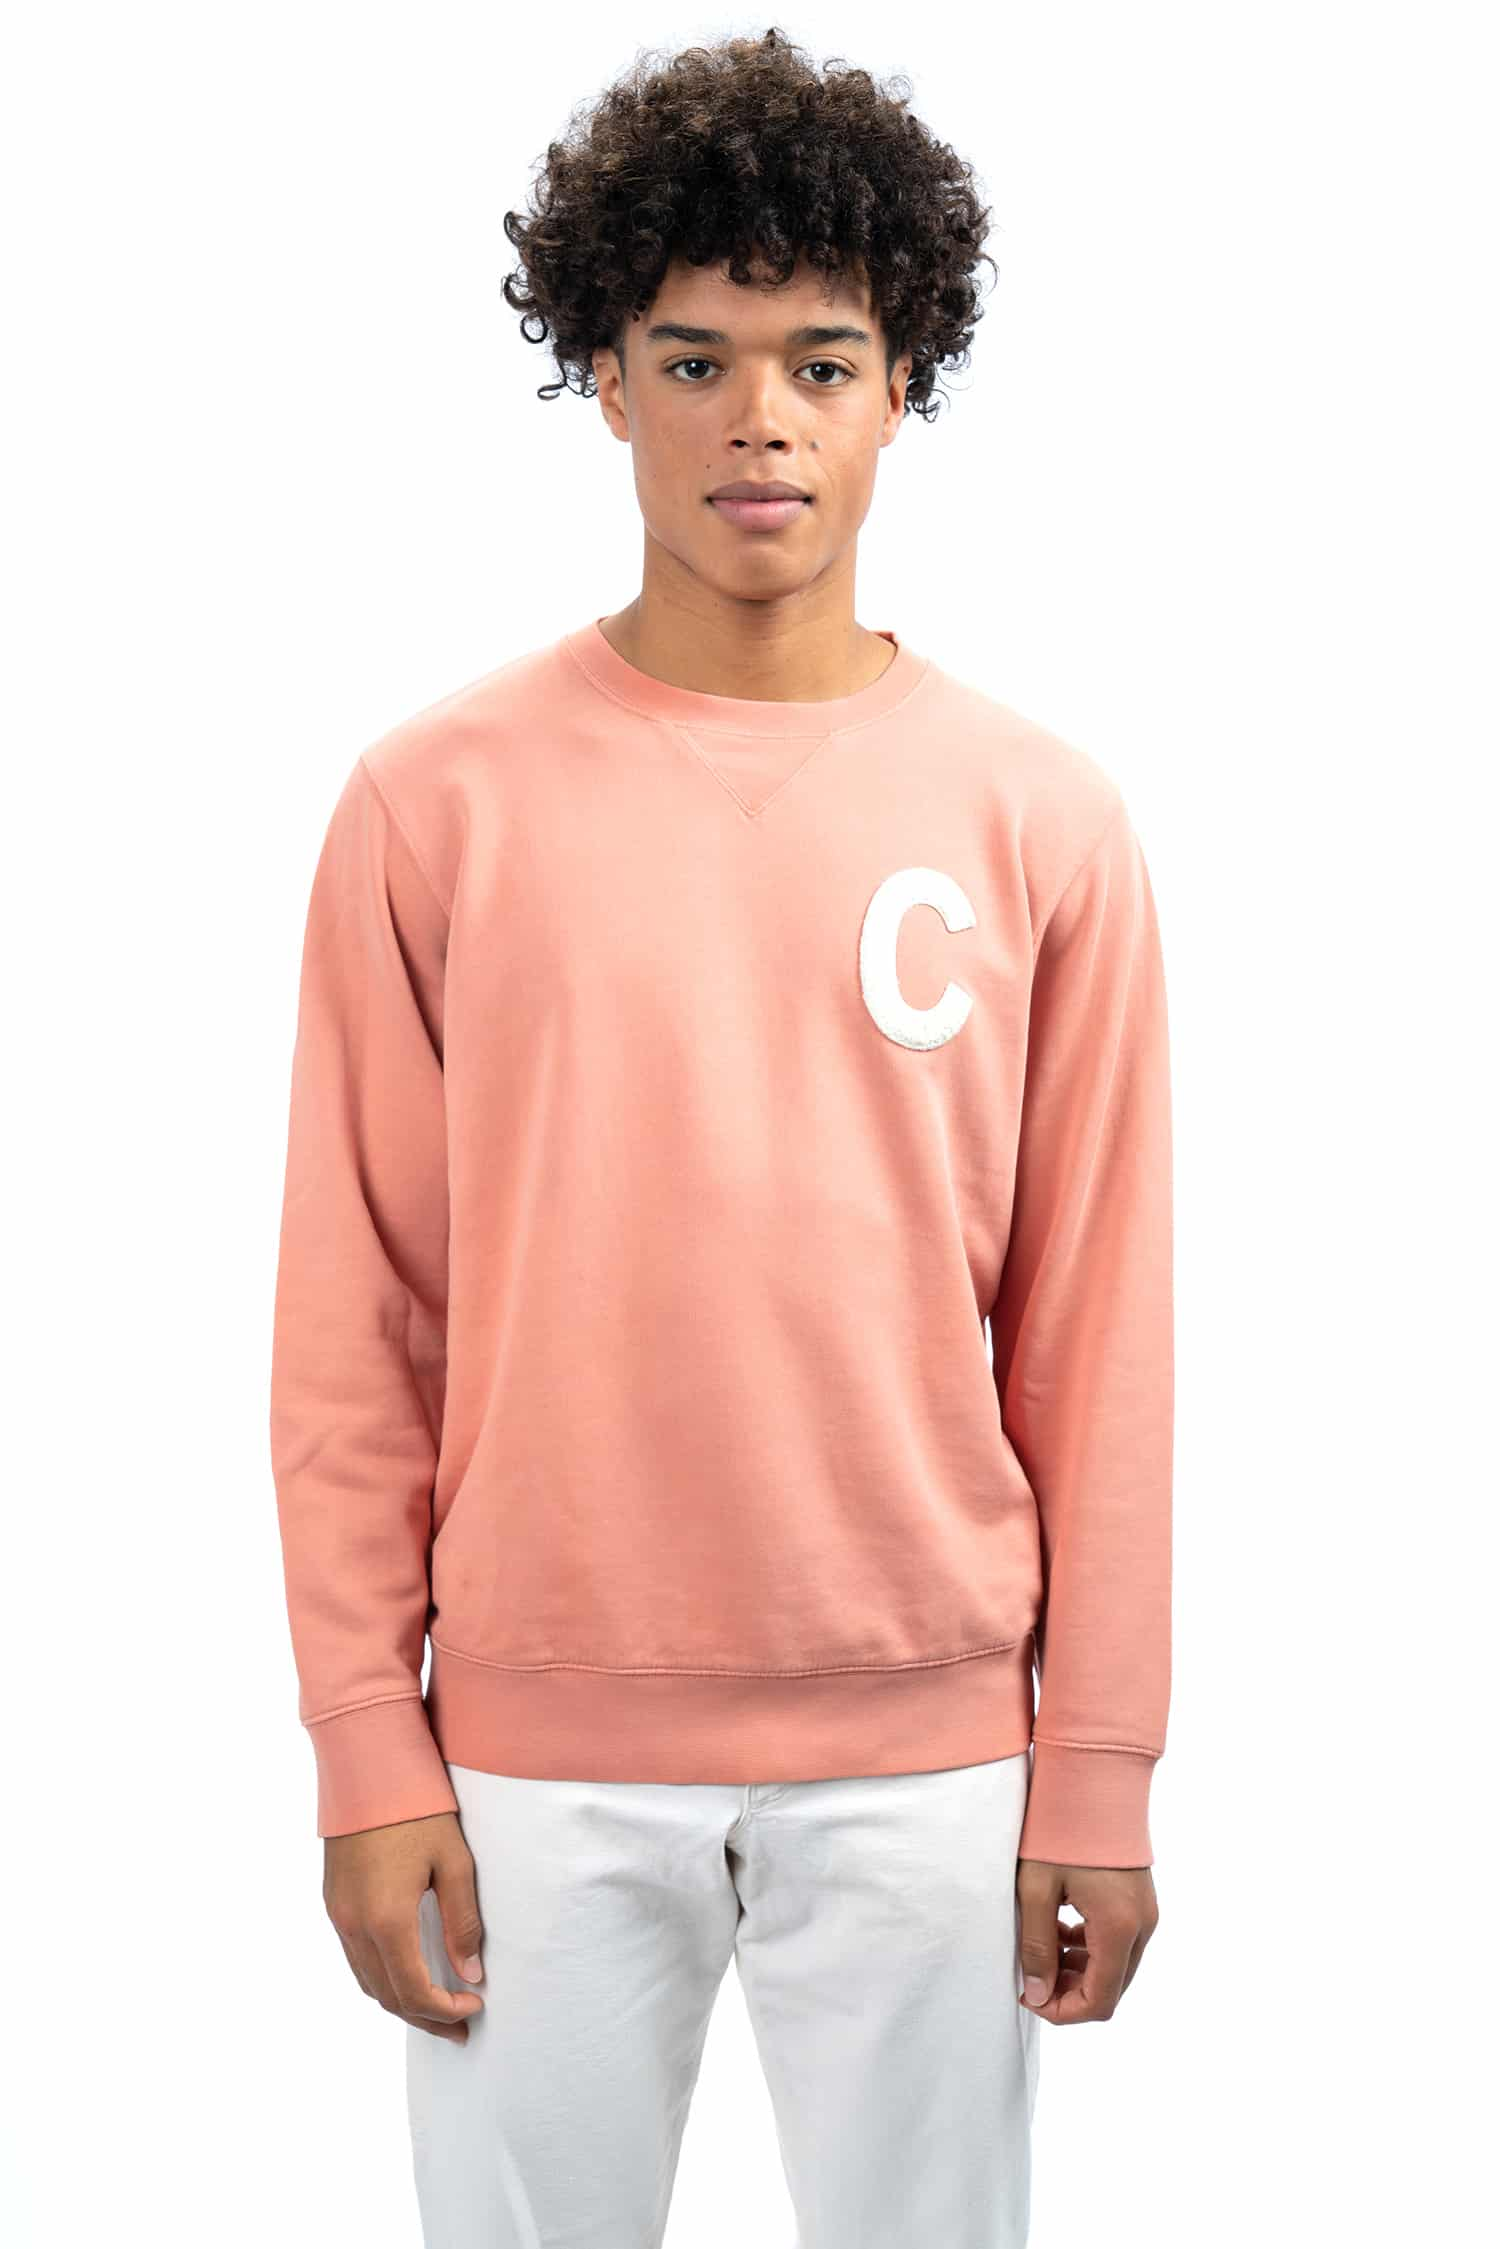 Williamsburg Sweater - Orange